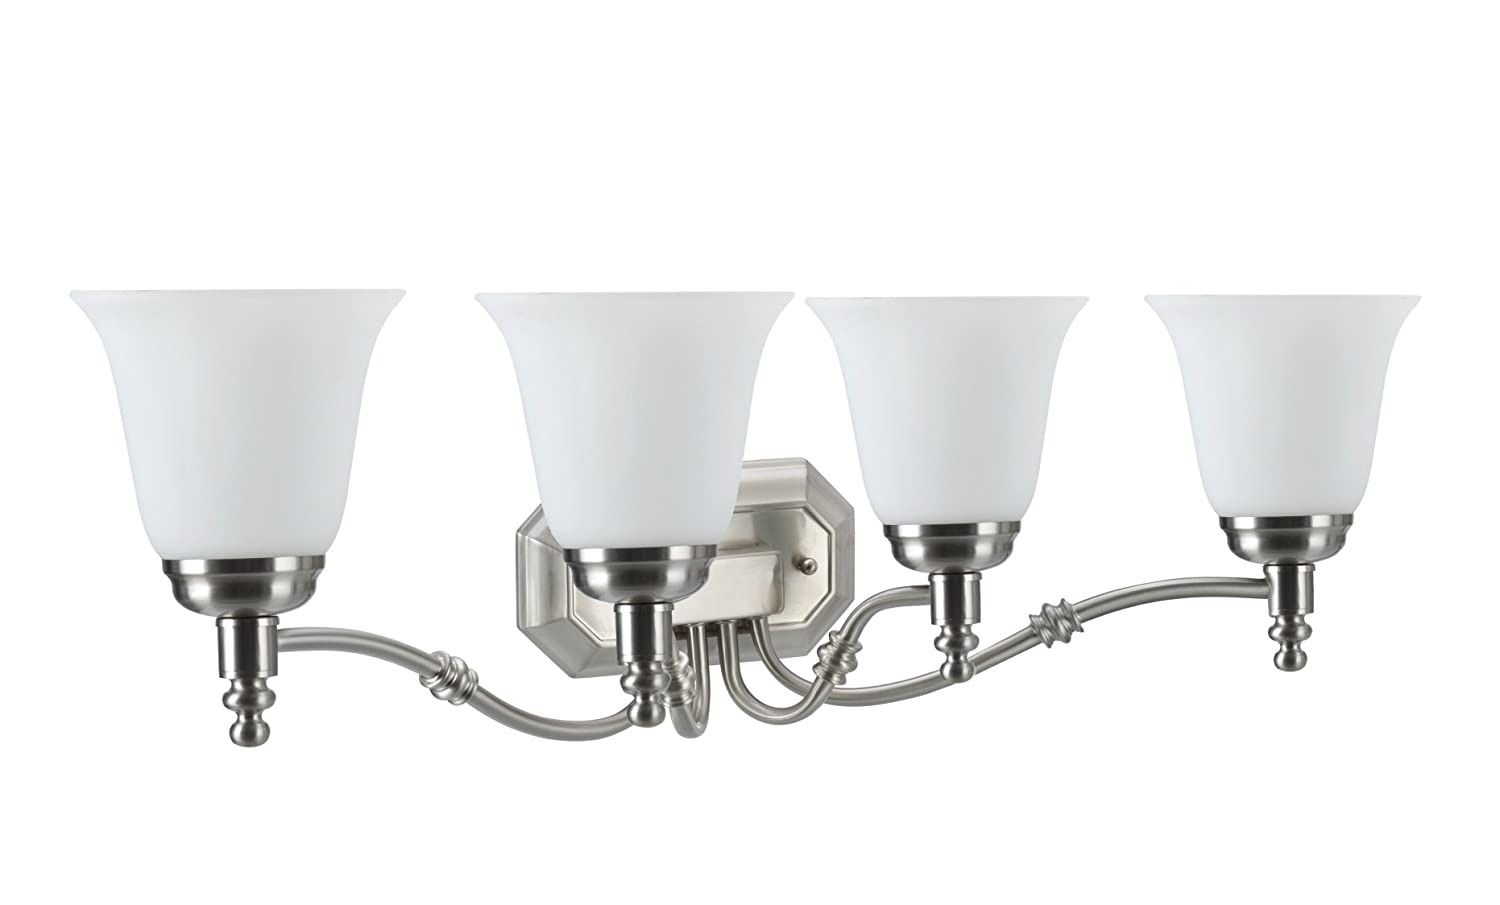 Transitional Design in Oil Rubbed Bronze with Frosted Glass Shade 30 Wide Four-Light Metal Bathroom Vanity Wall Light Fixture Aspen Creative 62023-1